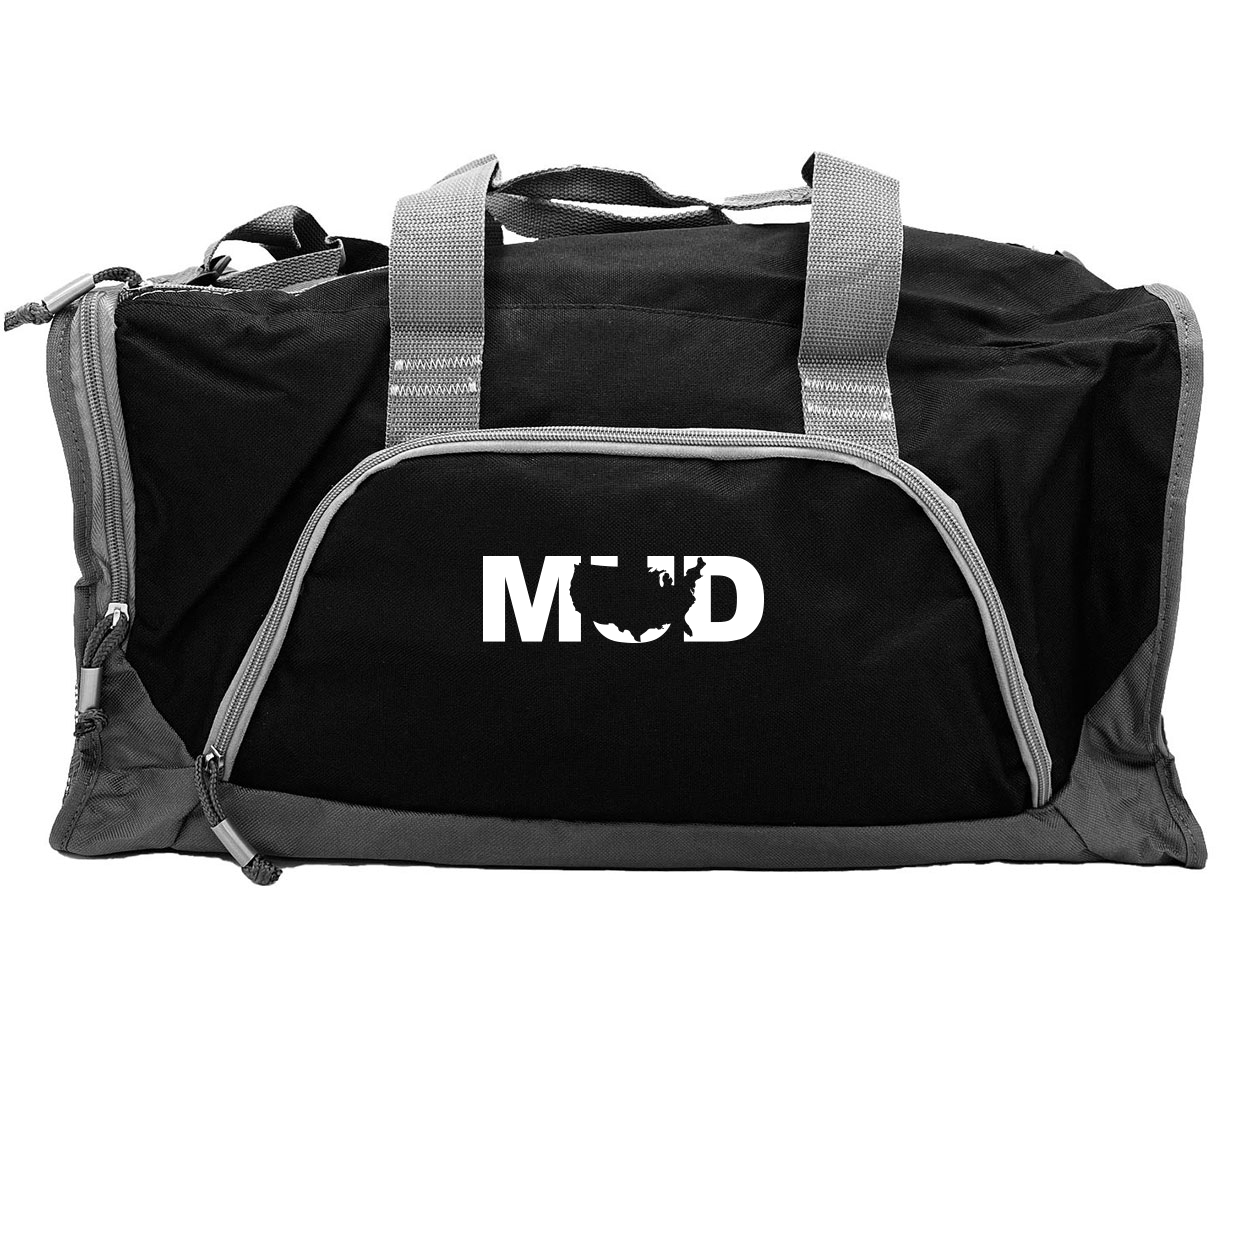 Mud United States Classic Rangeley Sport Duffel Bag Black (White Logo)